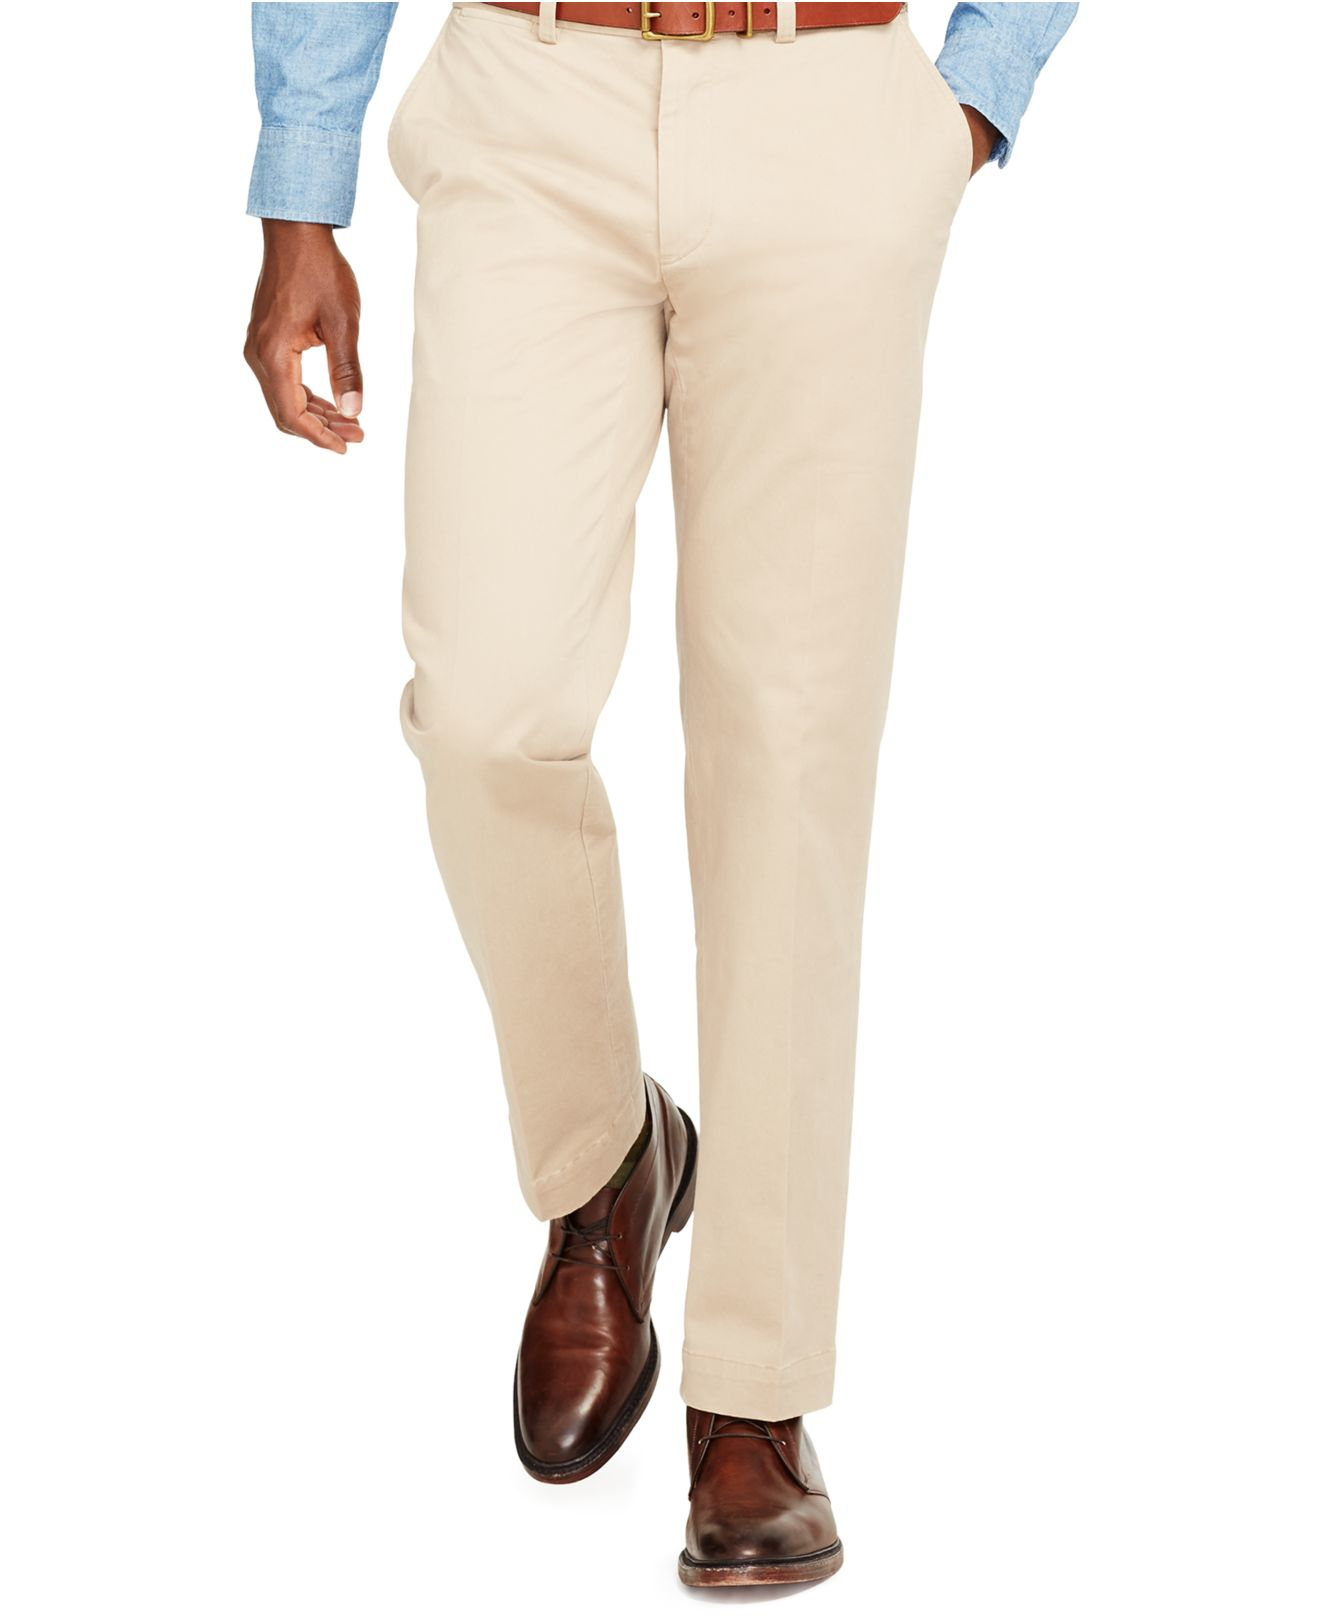 da108b4c8 Polo Ralph Lauren Classic-fit Suffield Stretch-chino Pants in ...